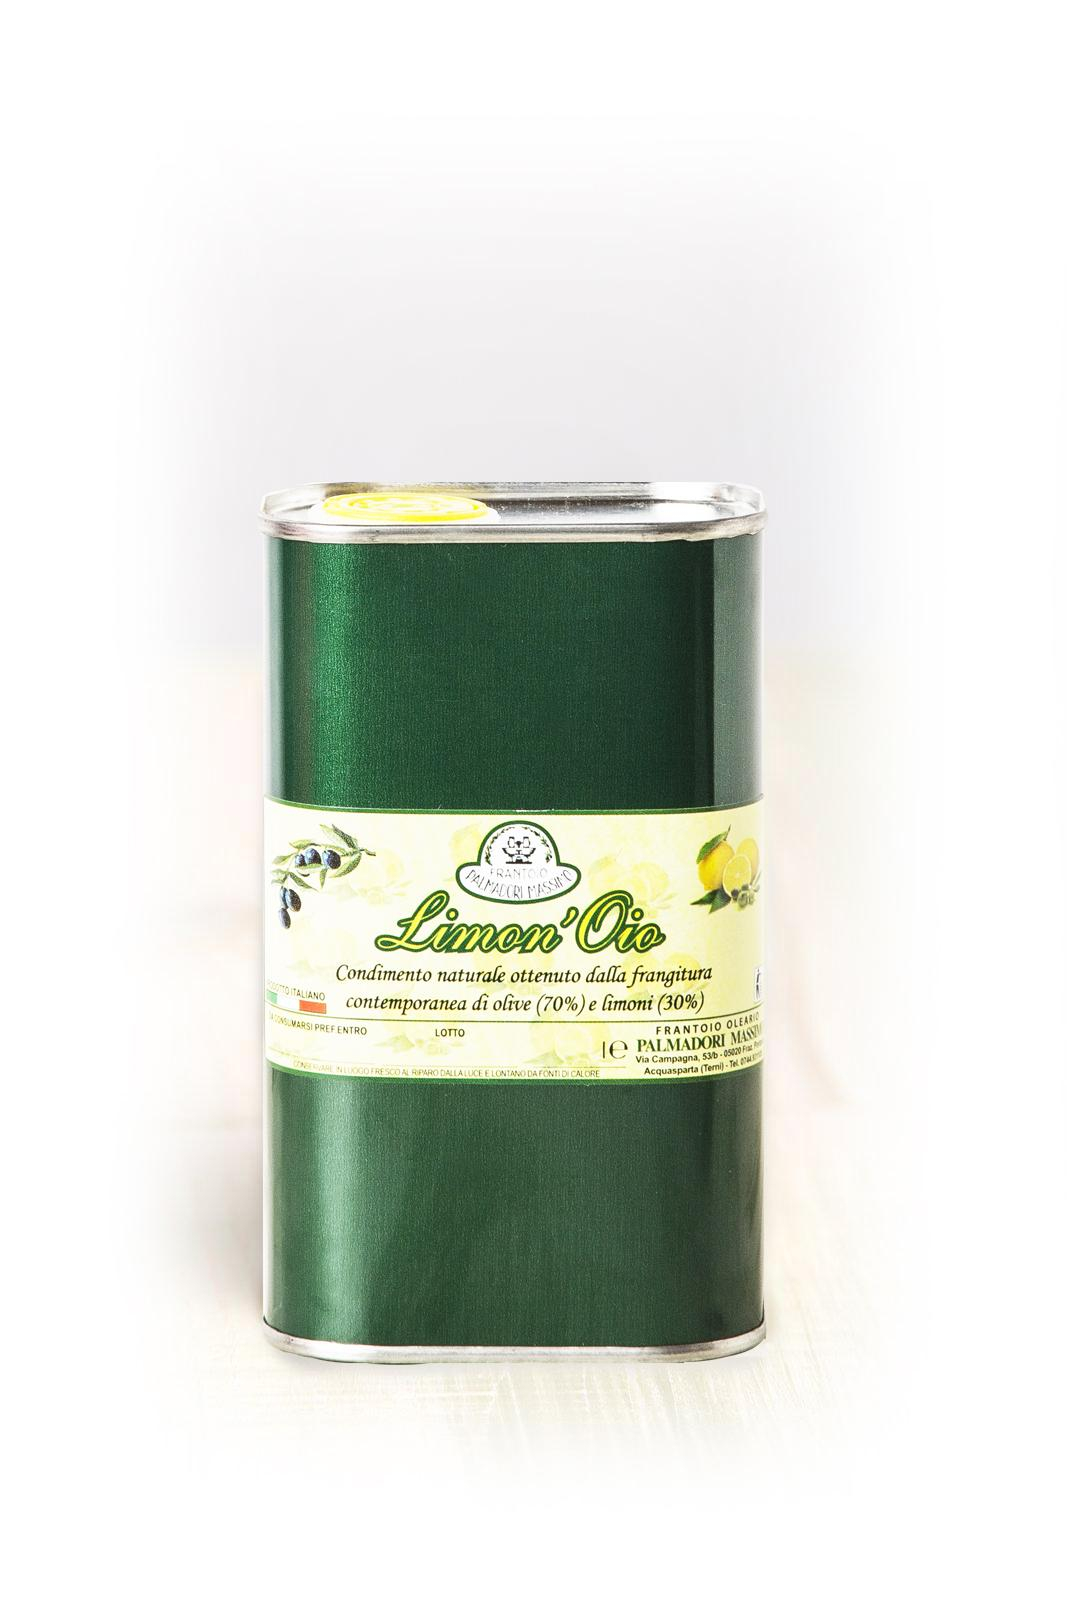 PALMADORI LIMON'OIO LATTINA 0,50 LT